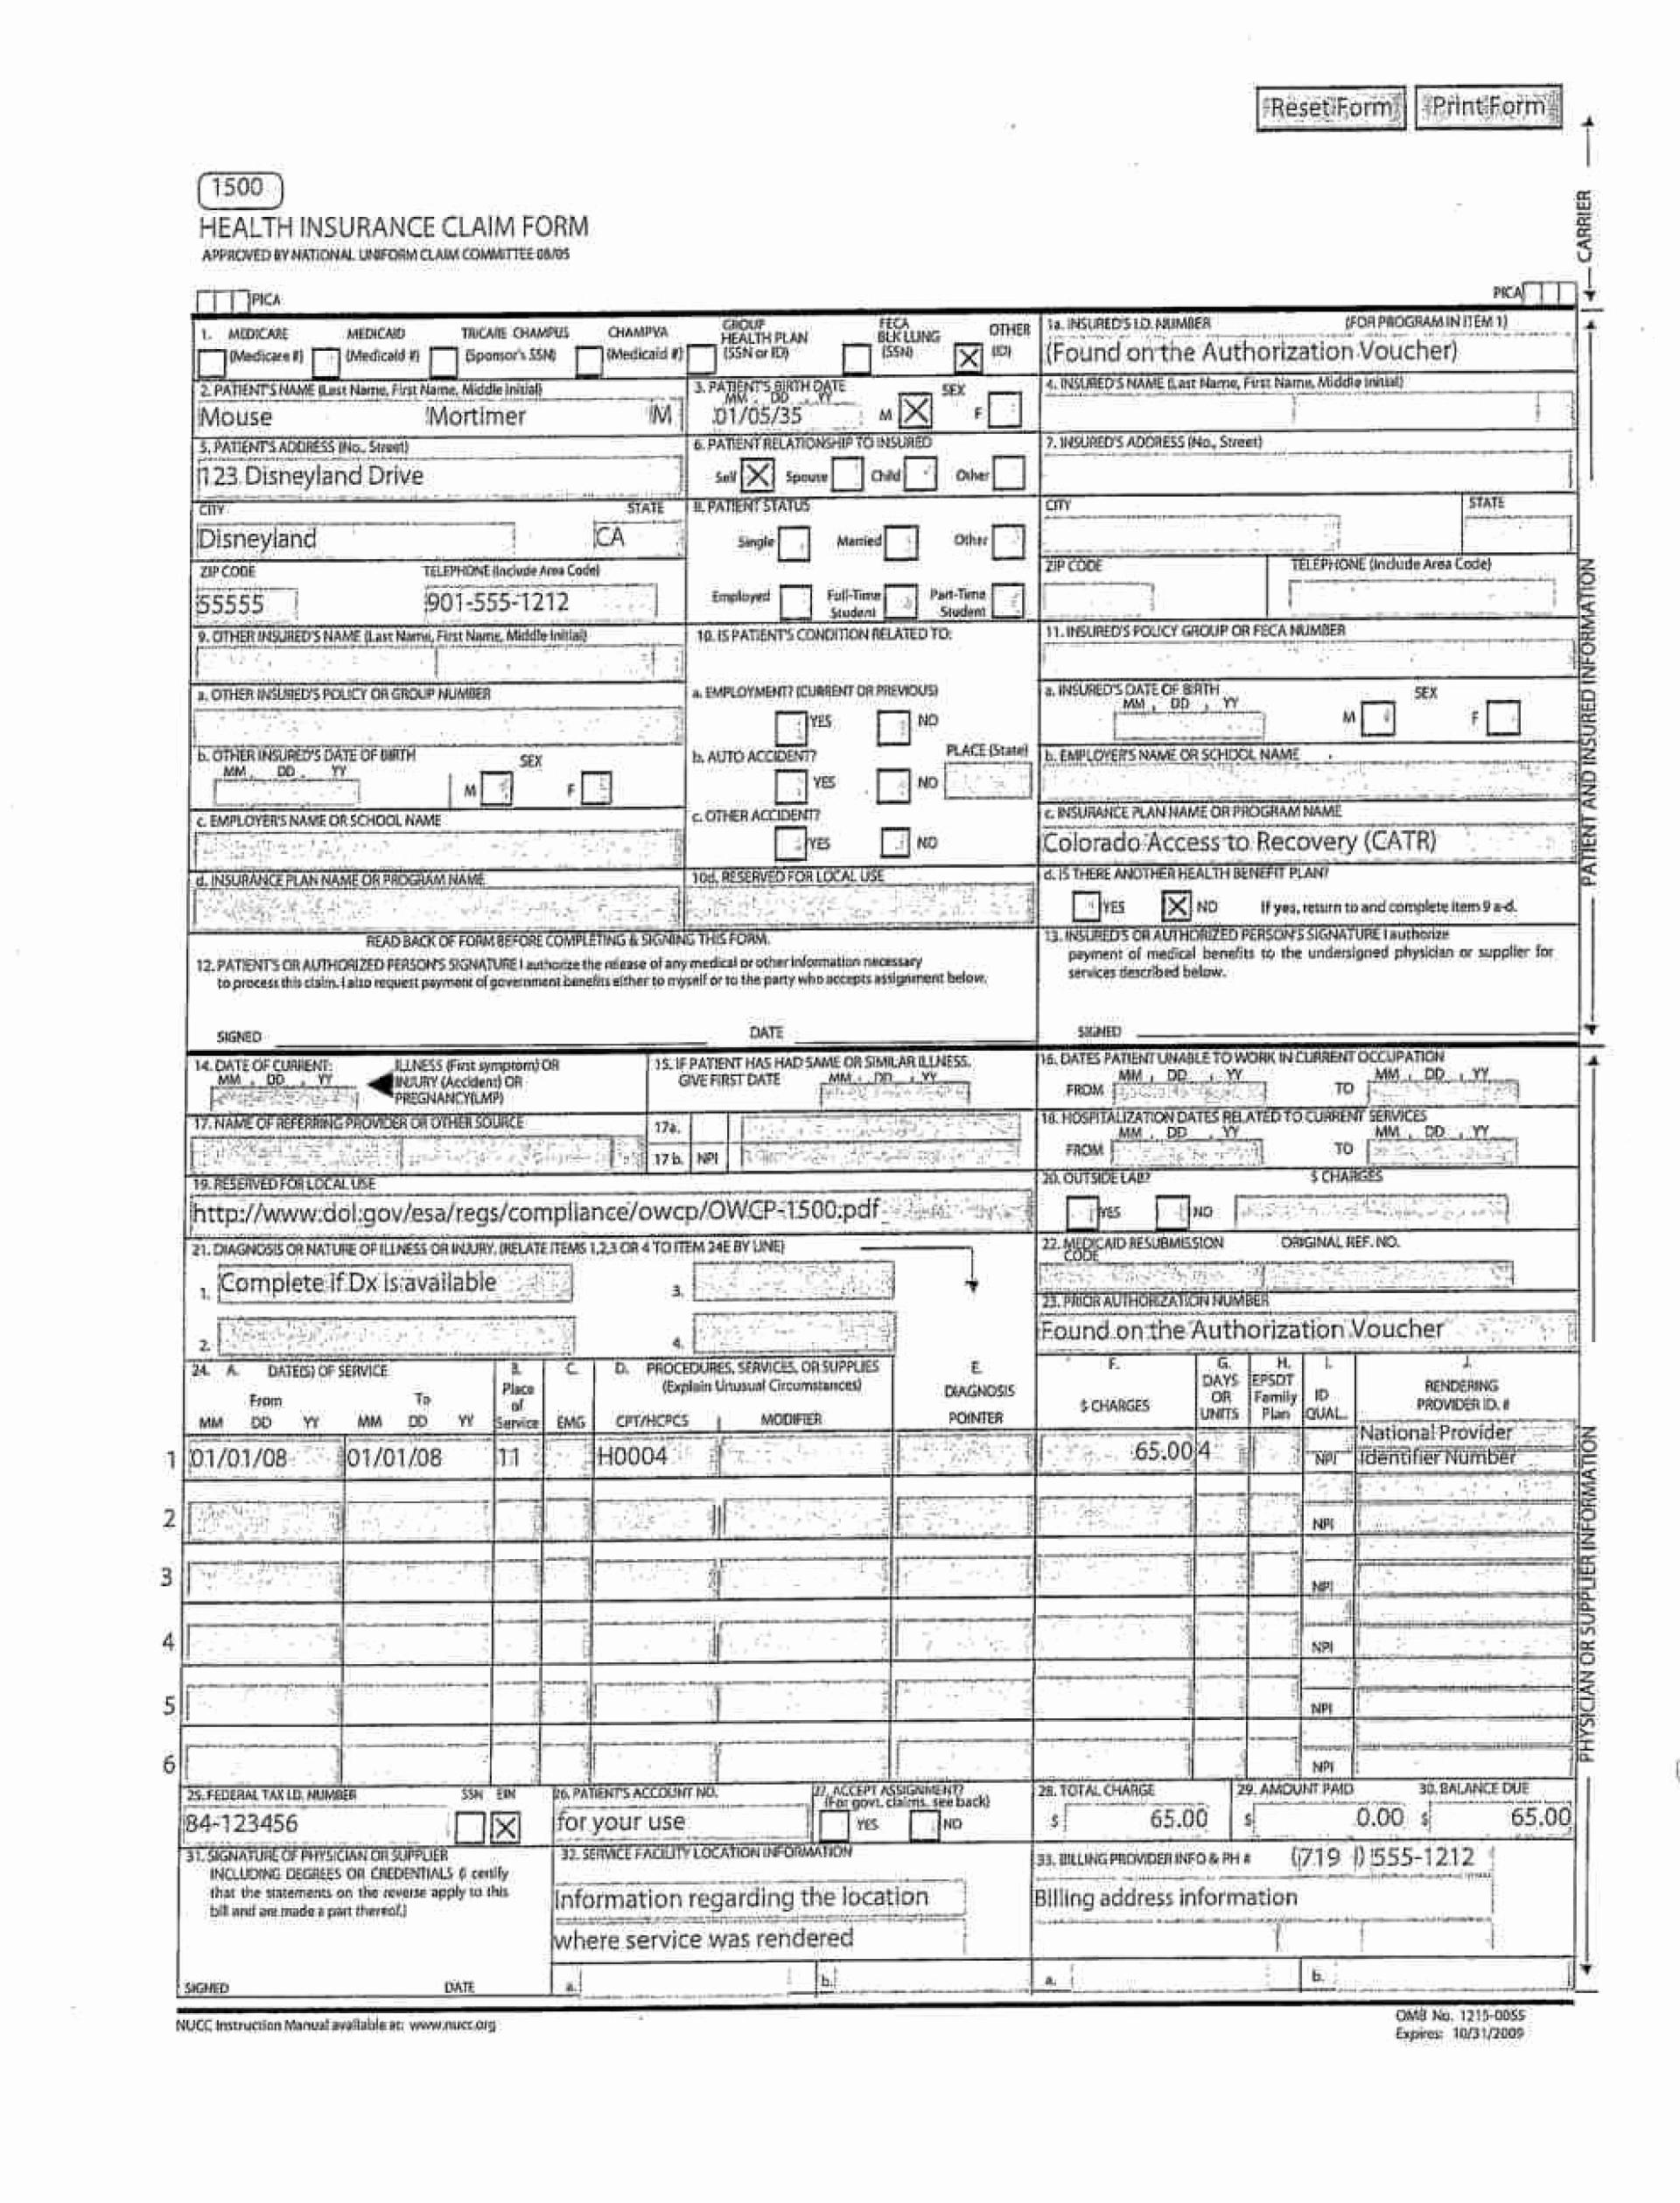 Cms Form 1500 Template